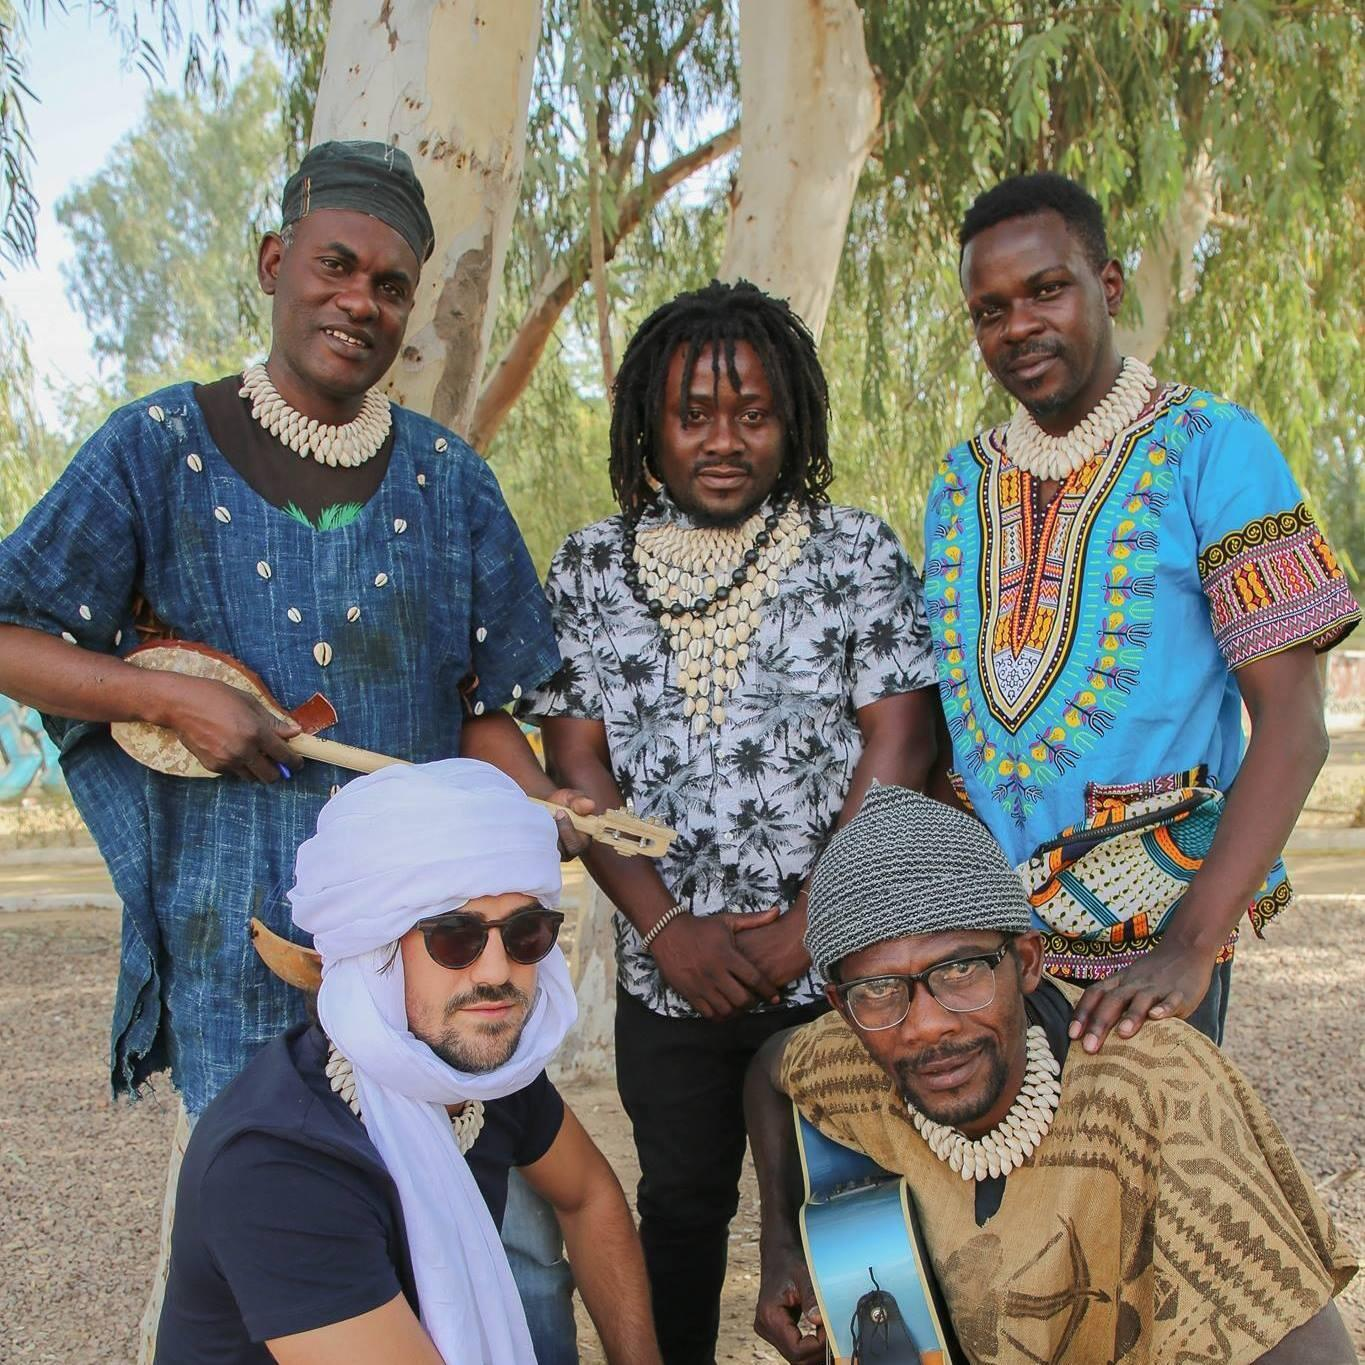 The band, based in N'Djamena, are currently recording songs in lockdown in Lomé